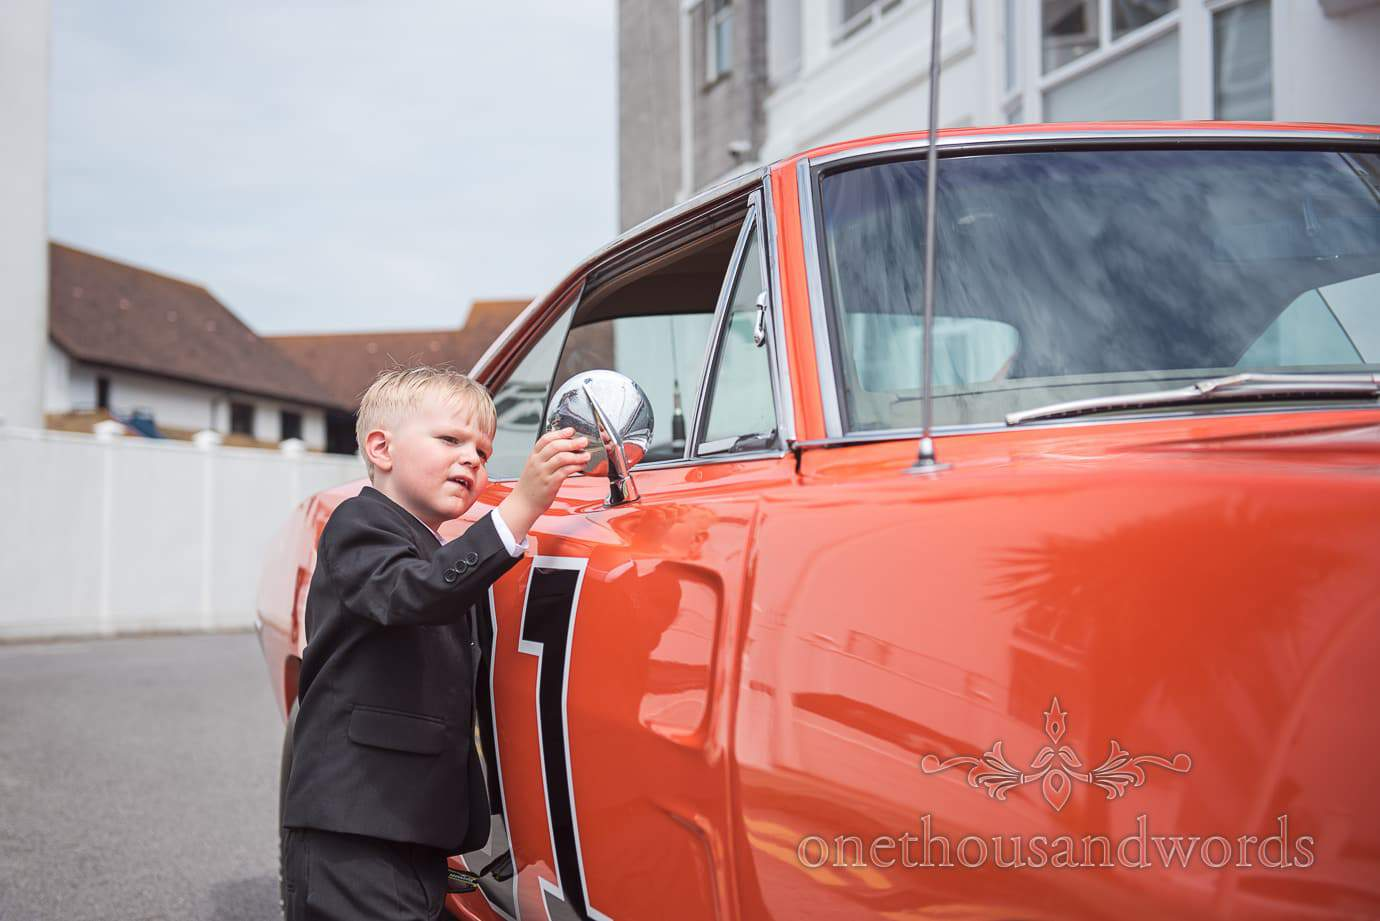 Child wedding guest inspects The General Lee wedding car at Rock and Roll wedding